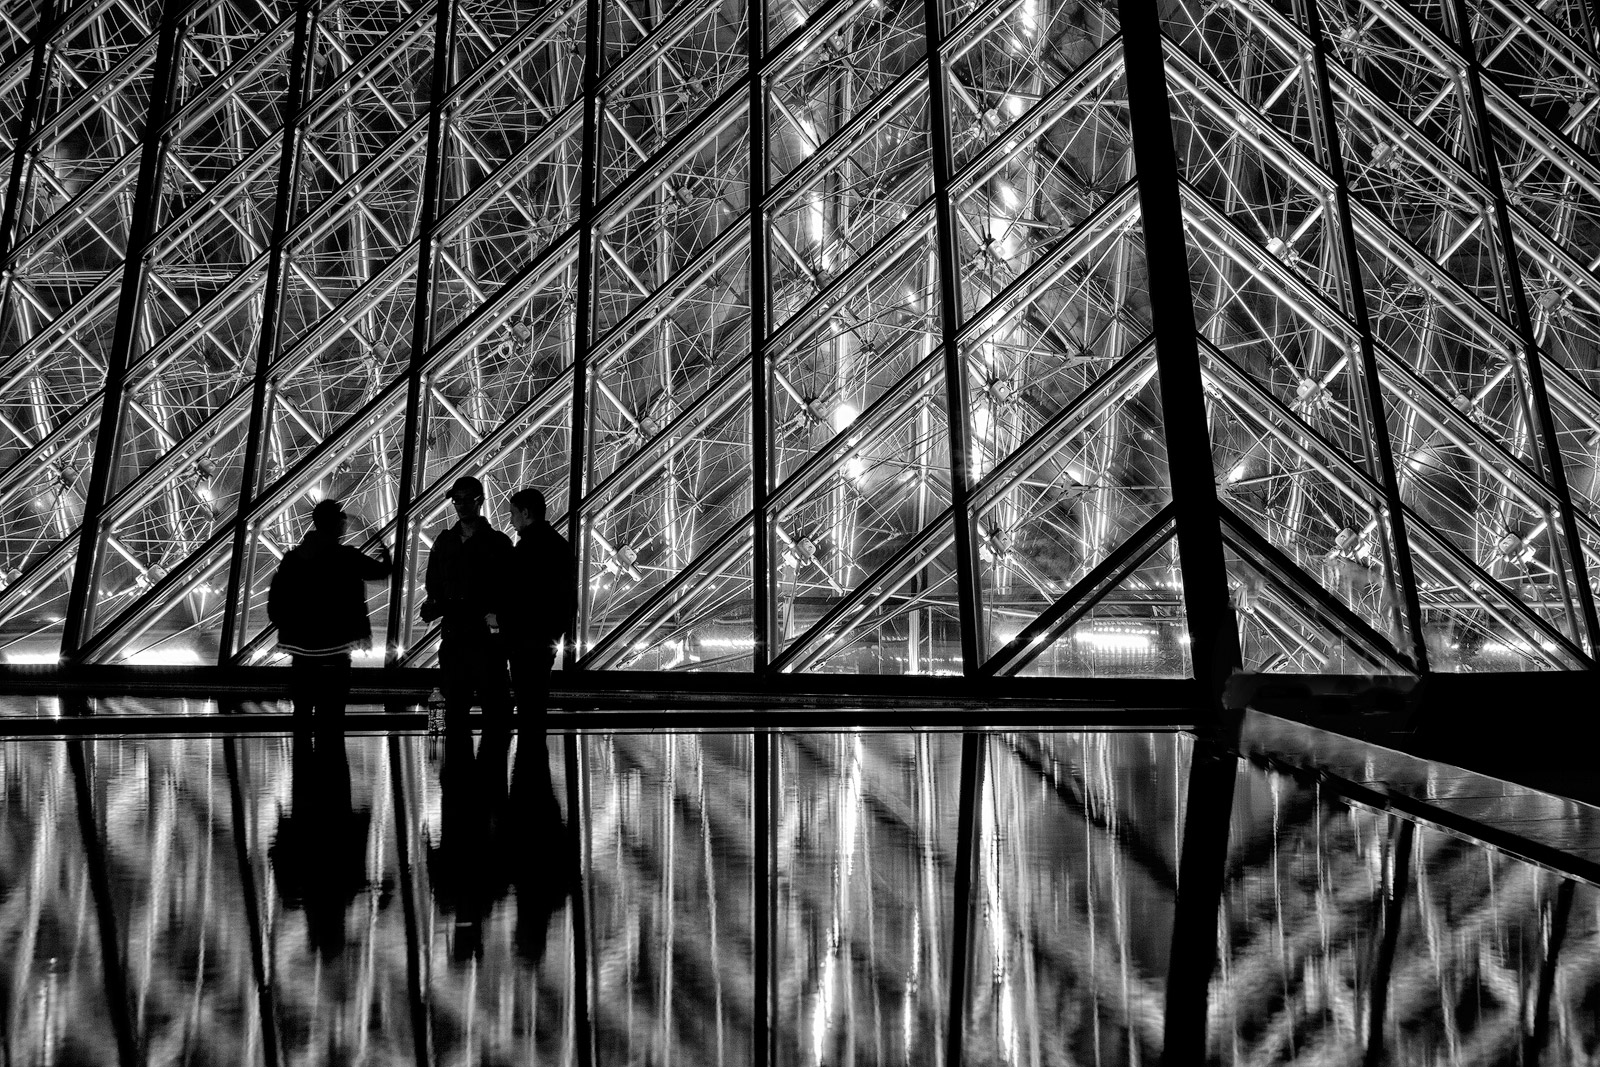 Silhouettes at the pyramid Louvre entrance